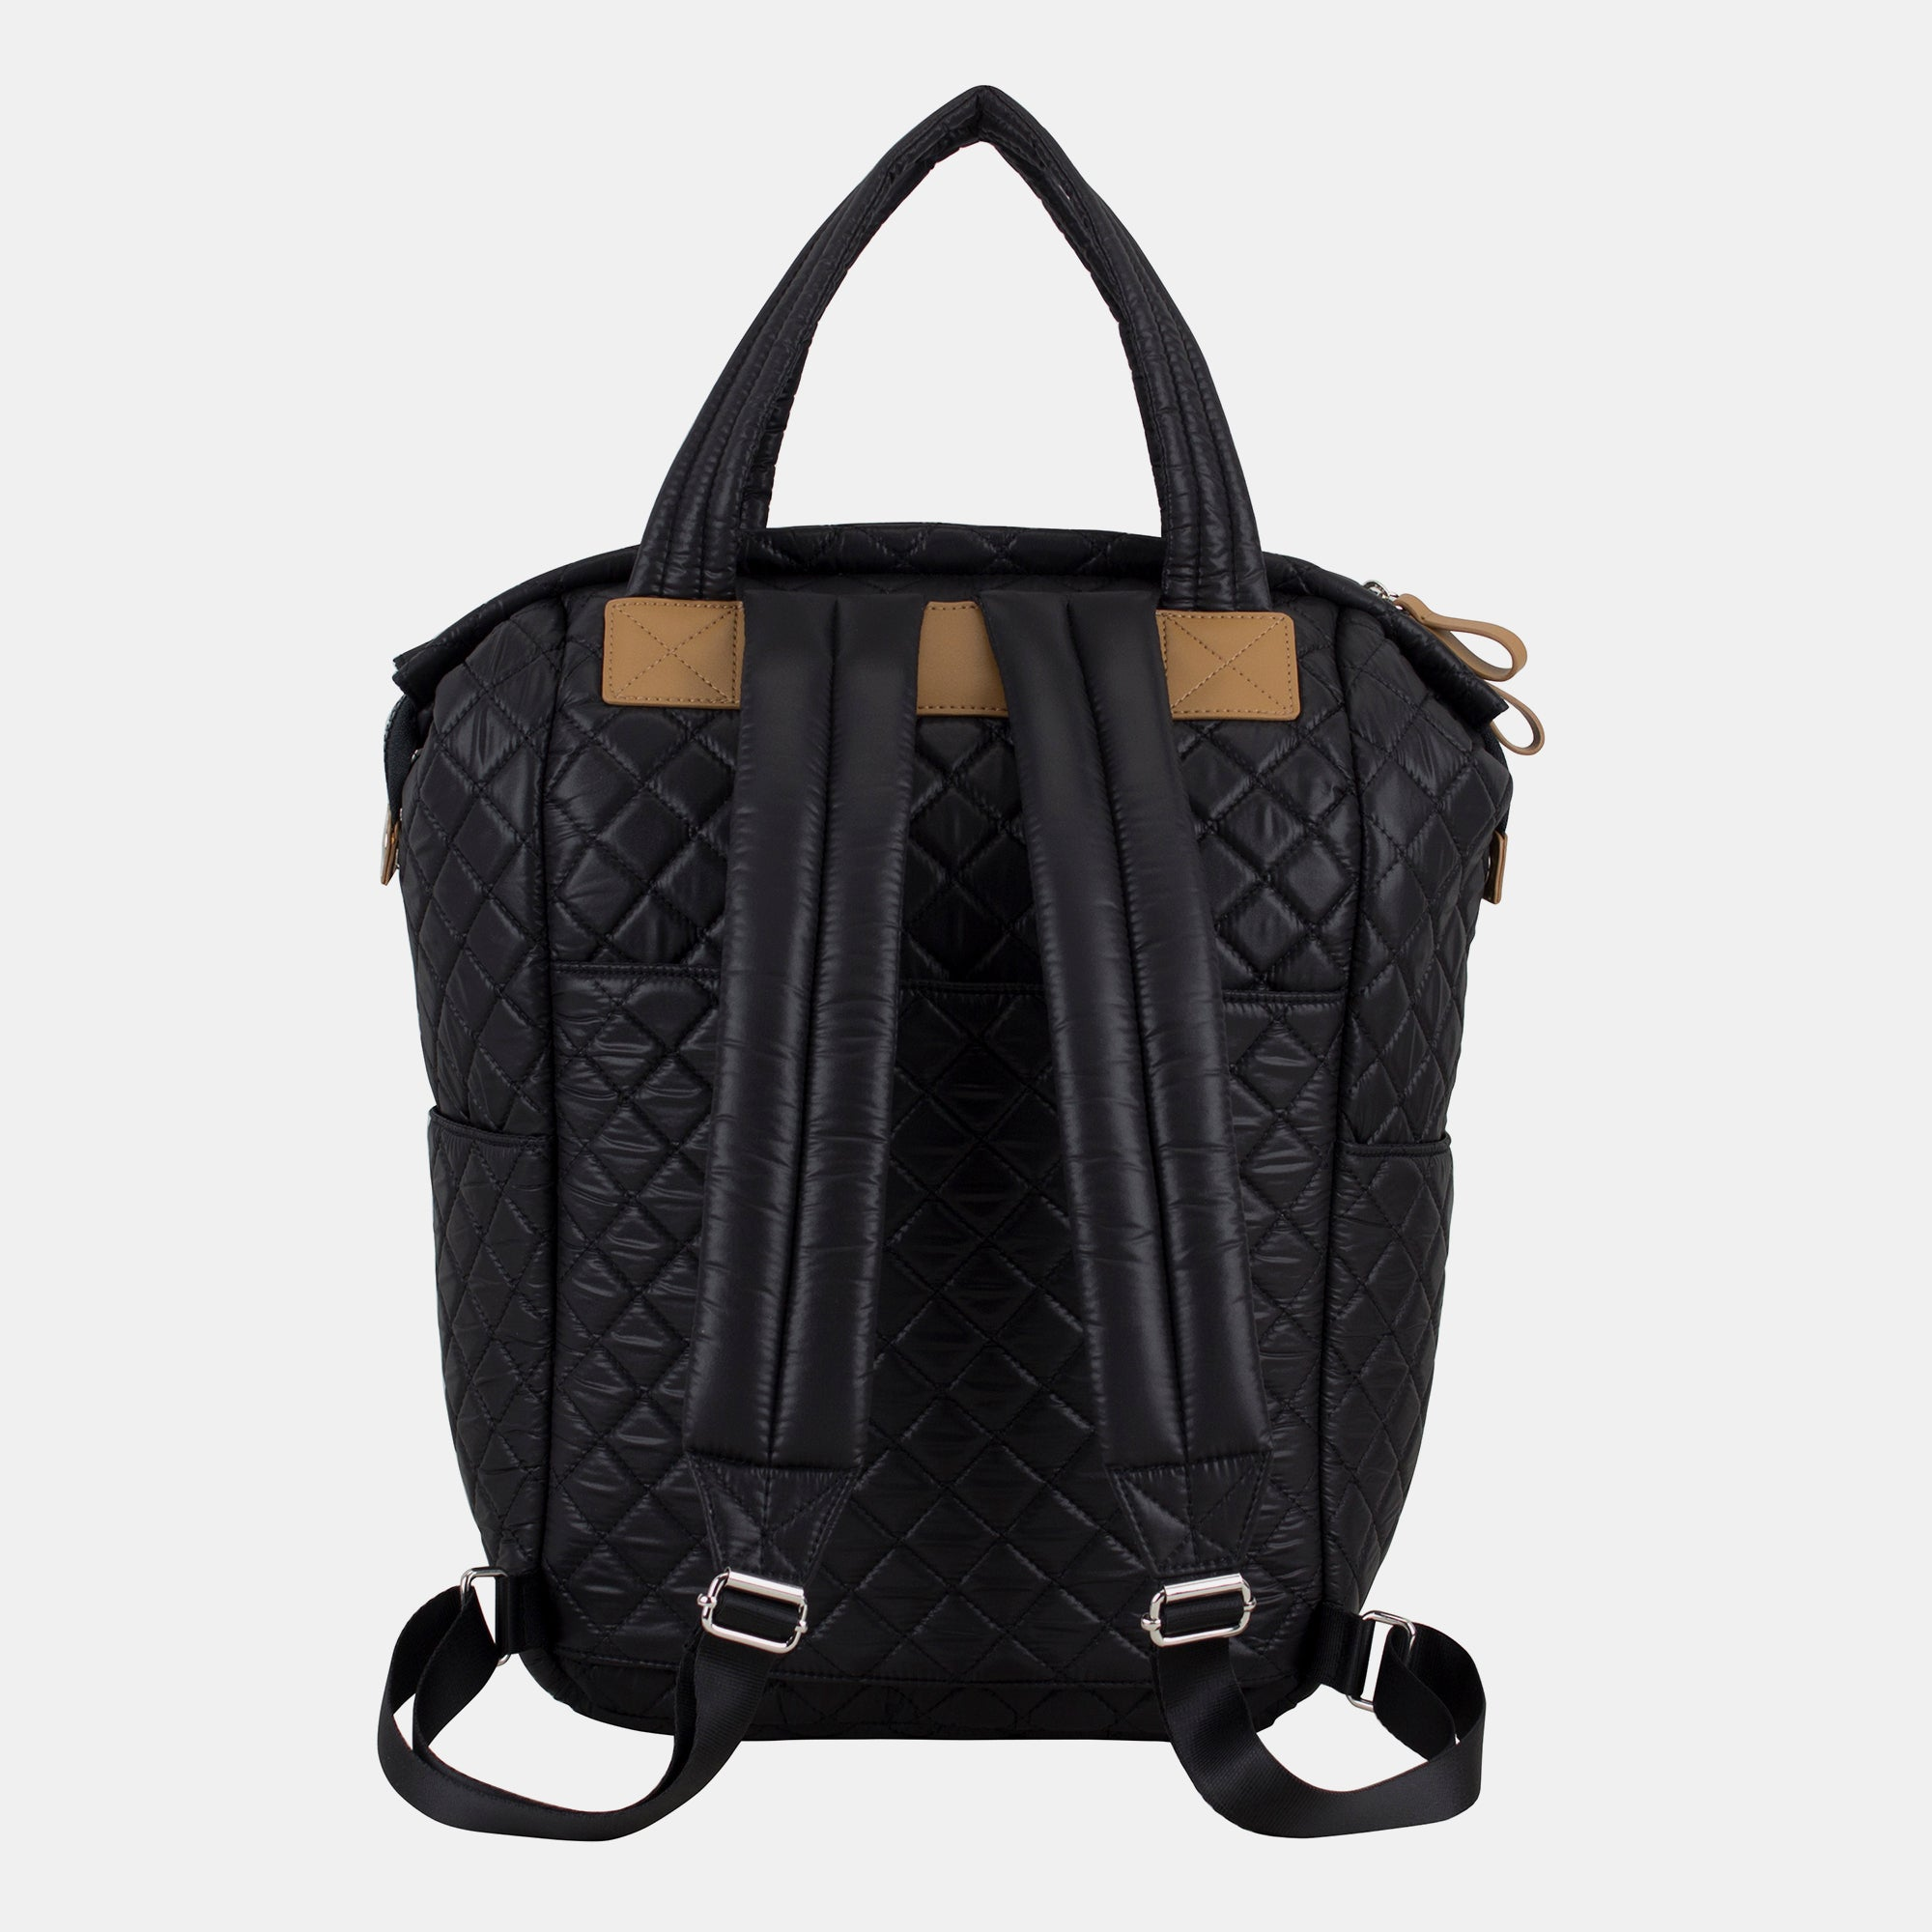 BODHI Quilted Luxe Top Handles Backpack with Trolley Sleeve